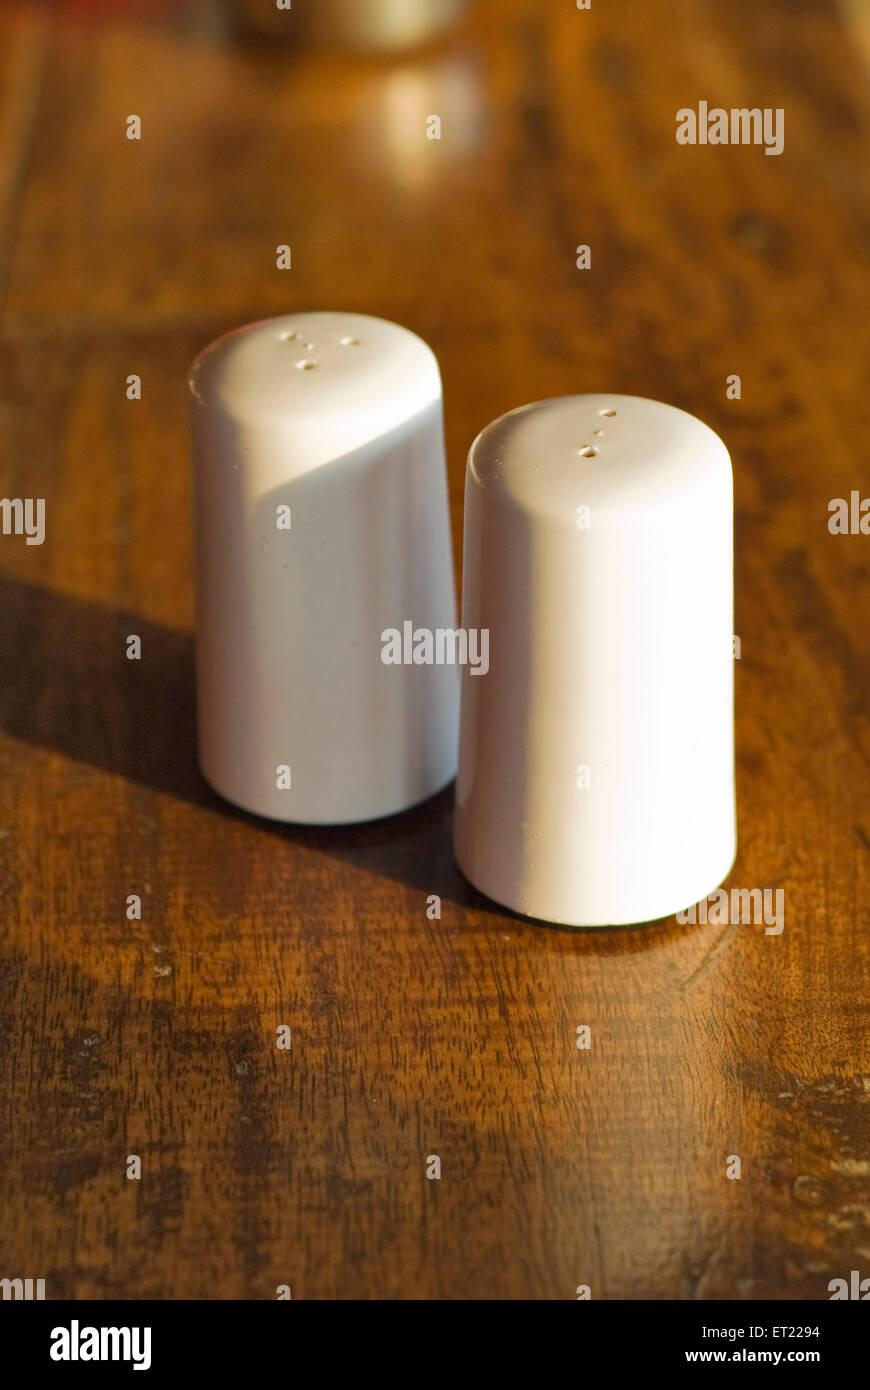 White salt and pepper dispensers on wooden table ; Goa ; India Stock Photo